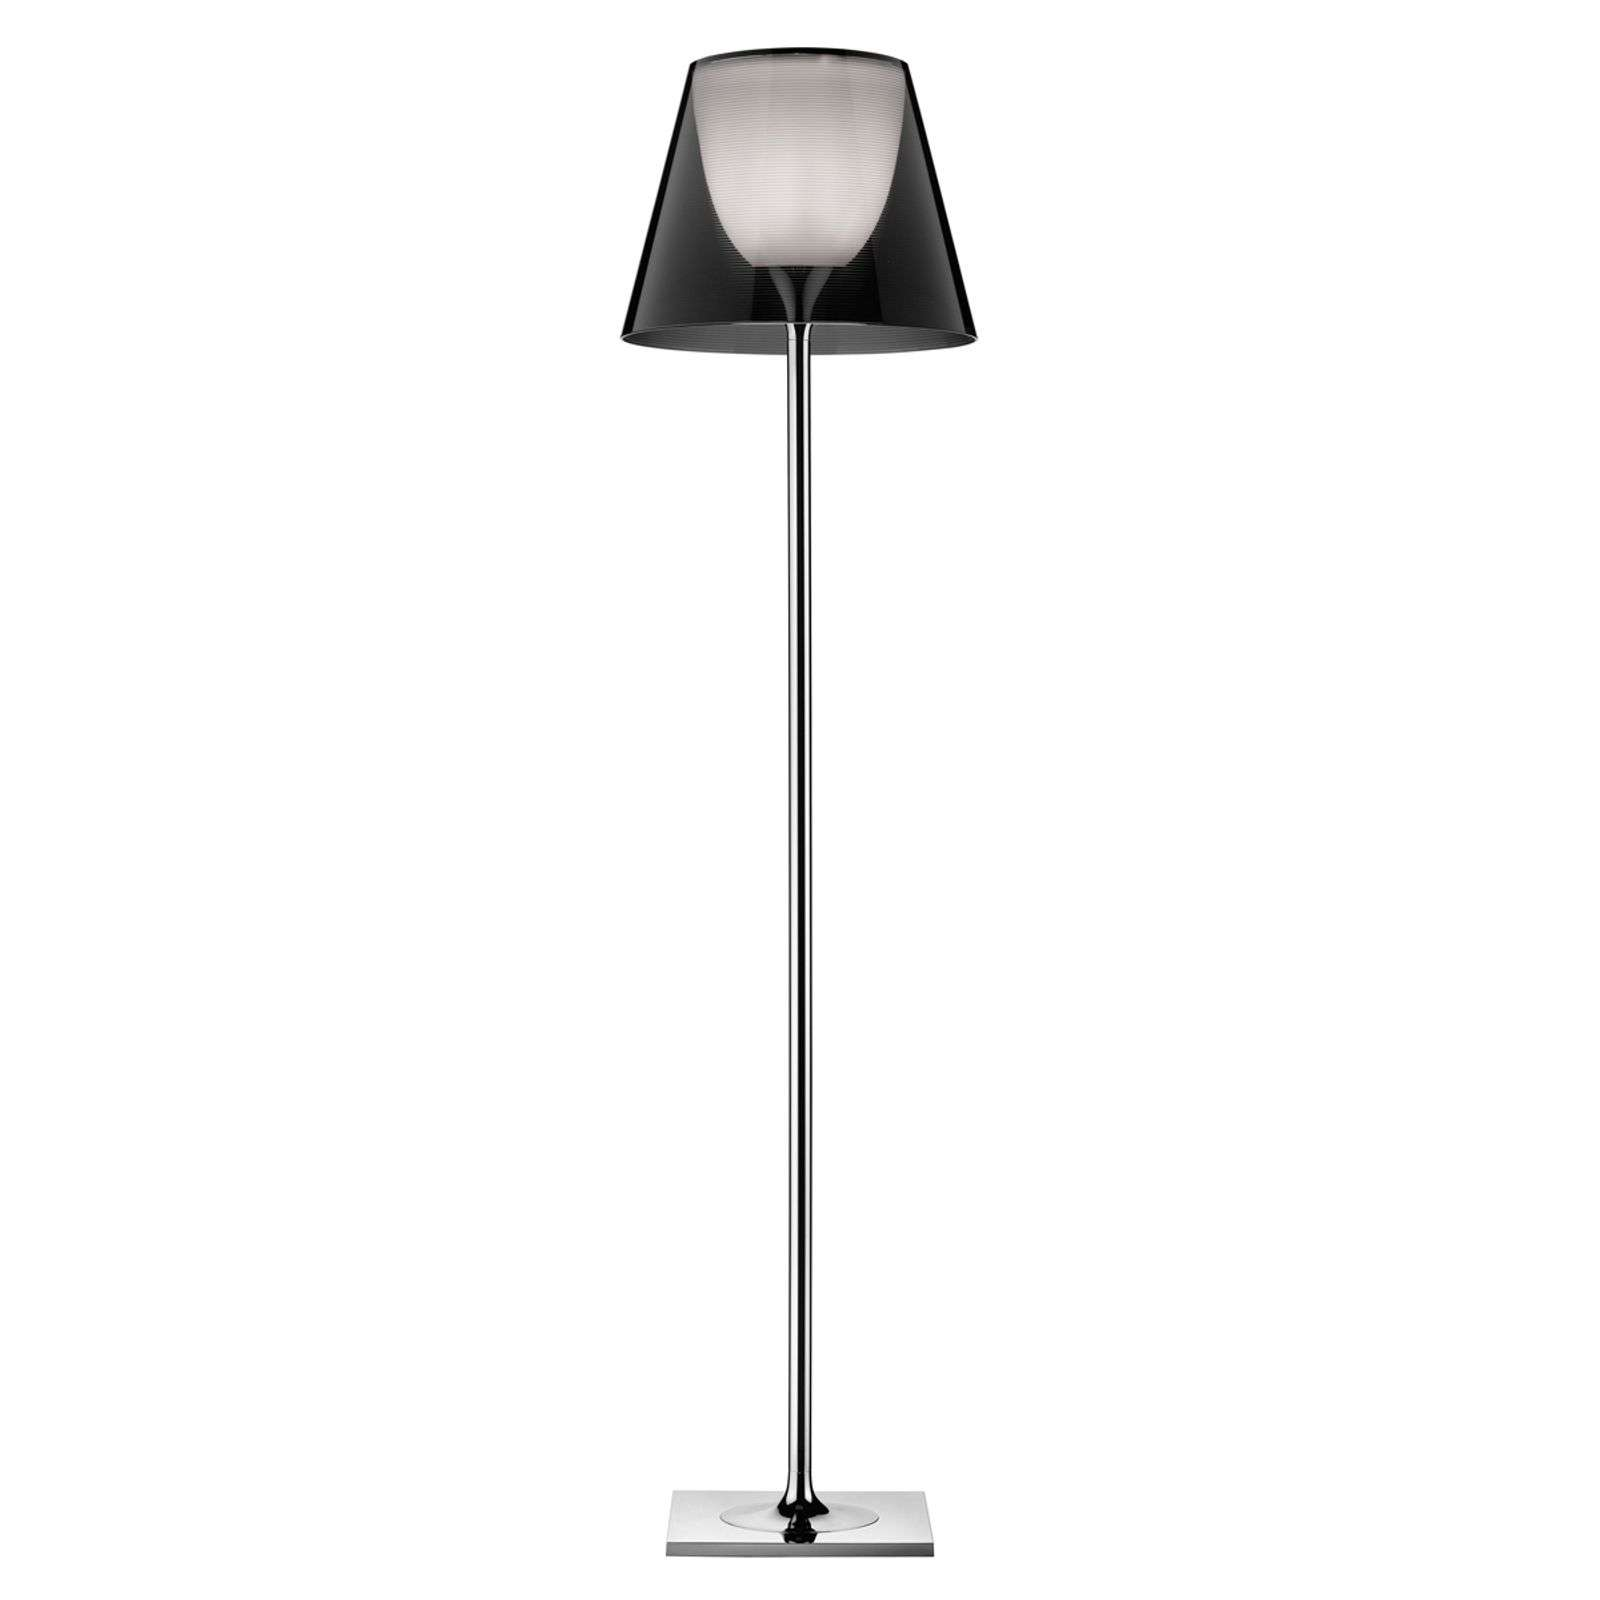 Lampadaire KTRIBE F2 by FLOS transparent